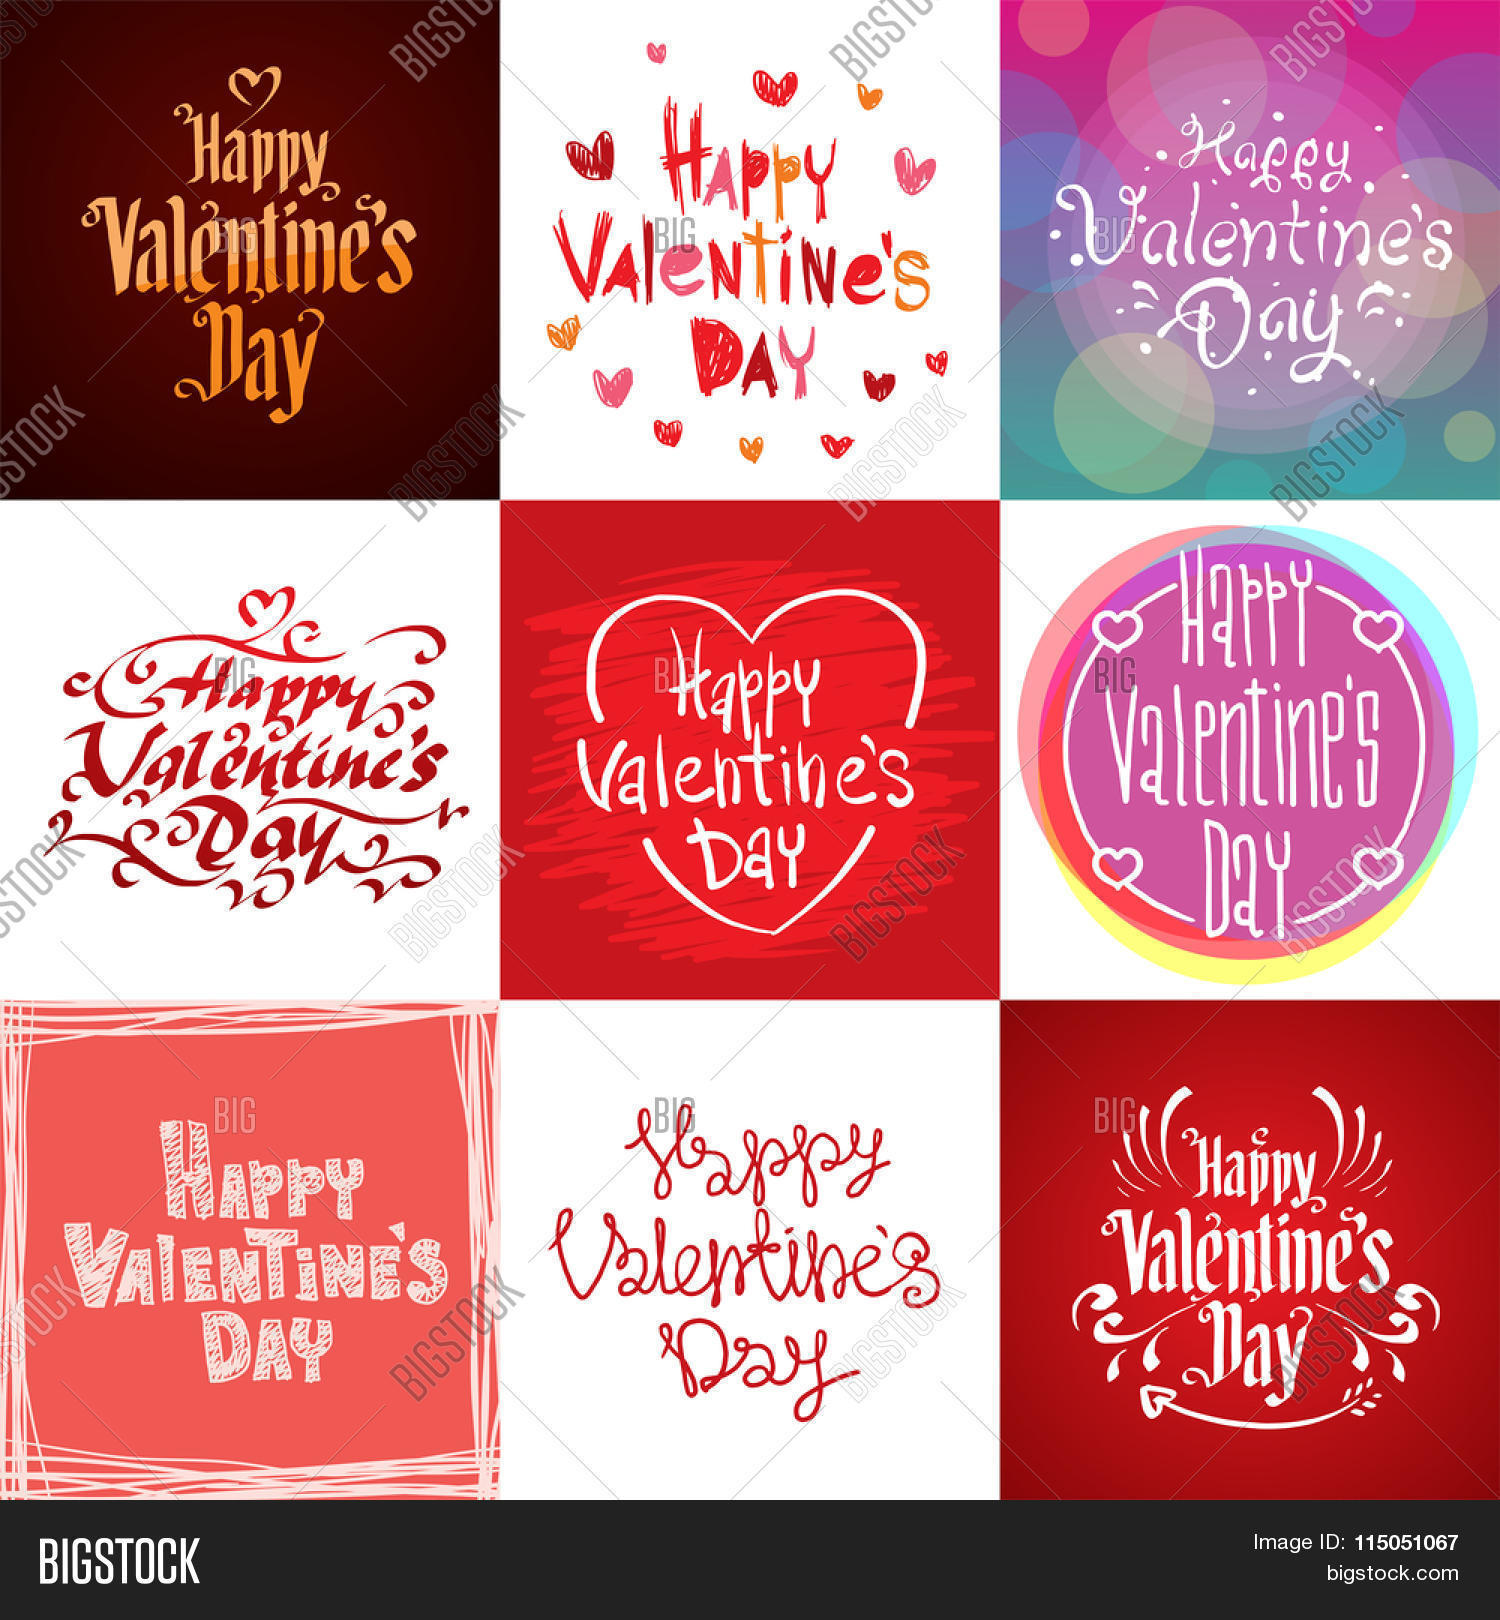 Happy Valentines Day greeting cards vector illustration Valentine – How to Design Valentine Card